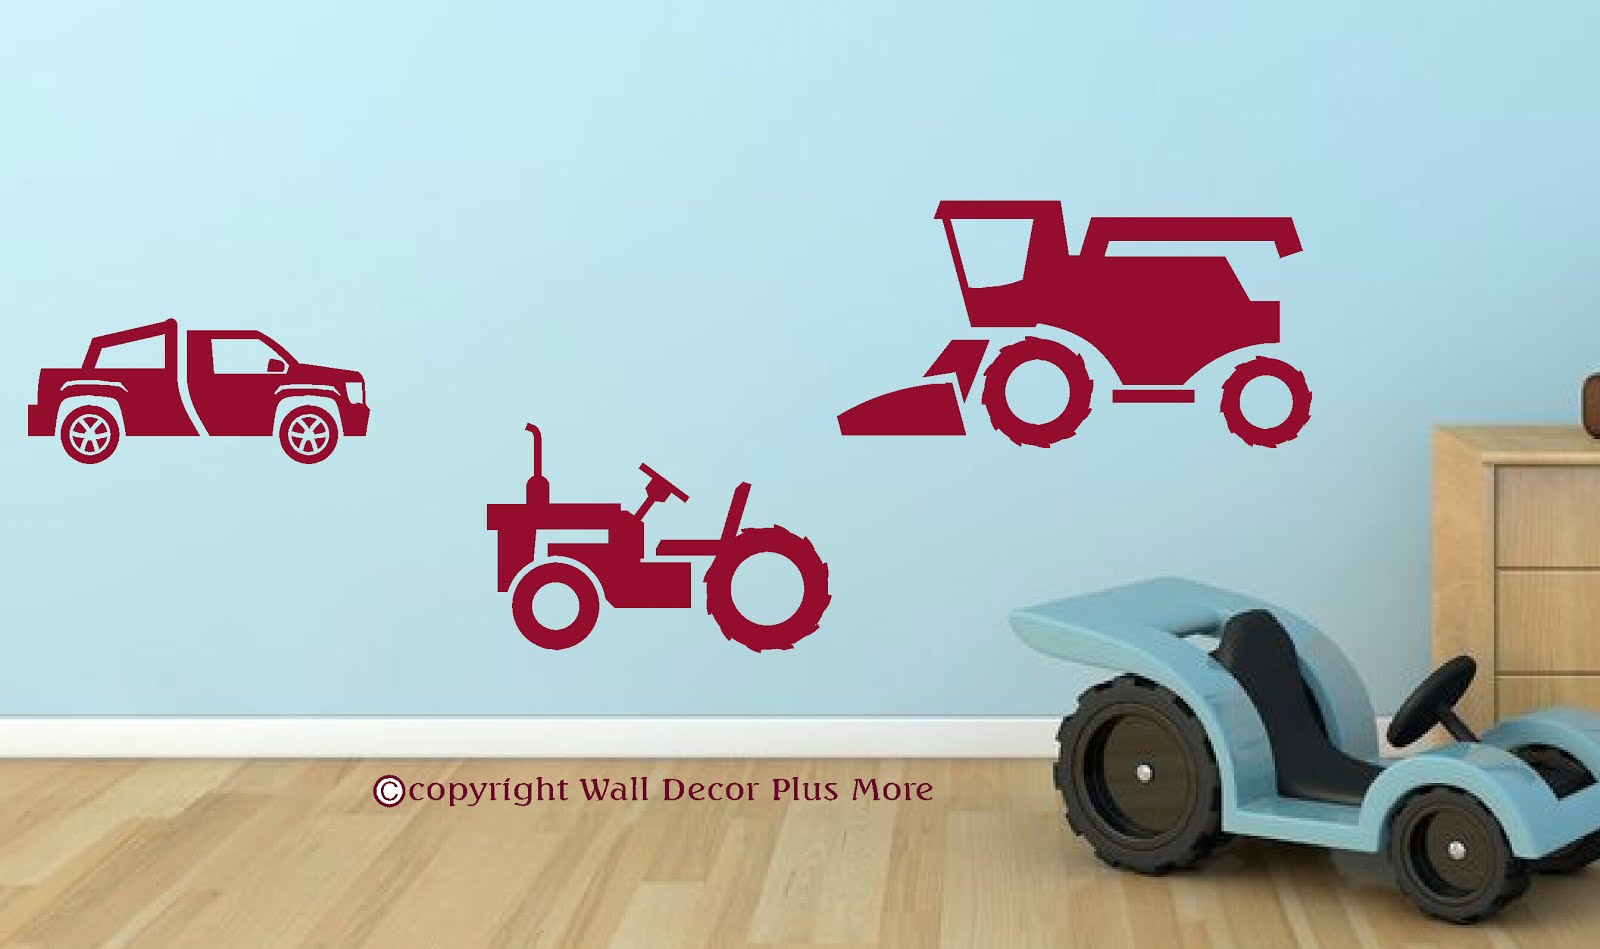 All about wall decals for the home 2017 got a little farm boy in your family or just a little guy who loves tractors the vinyl wall sticker shown above is red affixed to a light blue wall amipublicfo Images